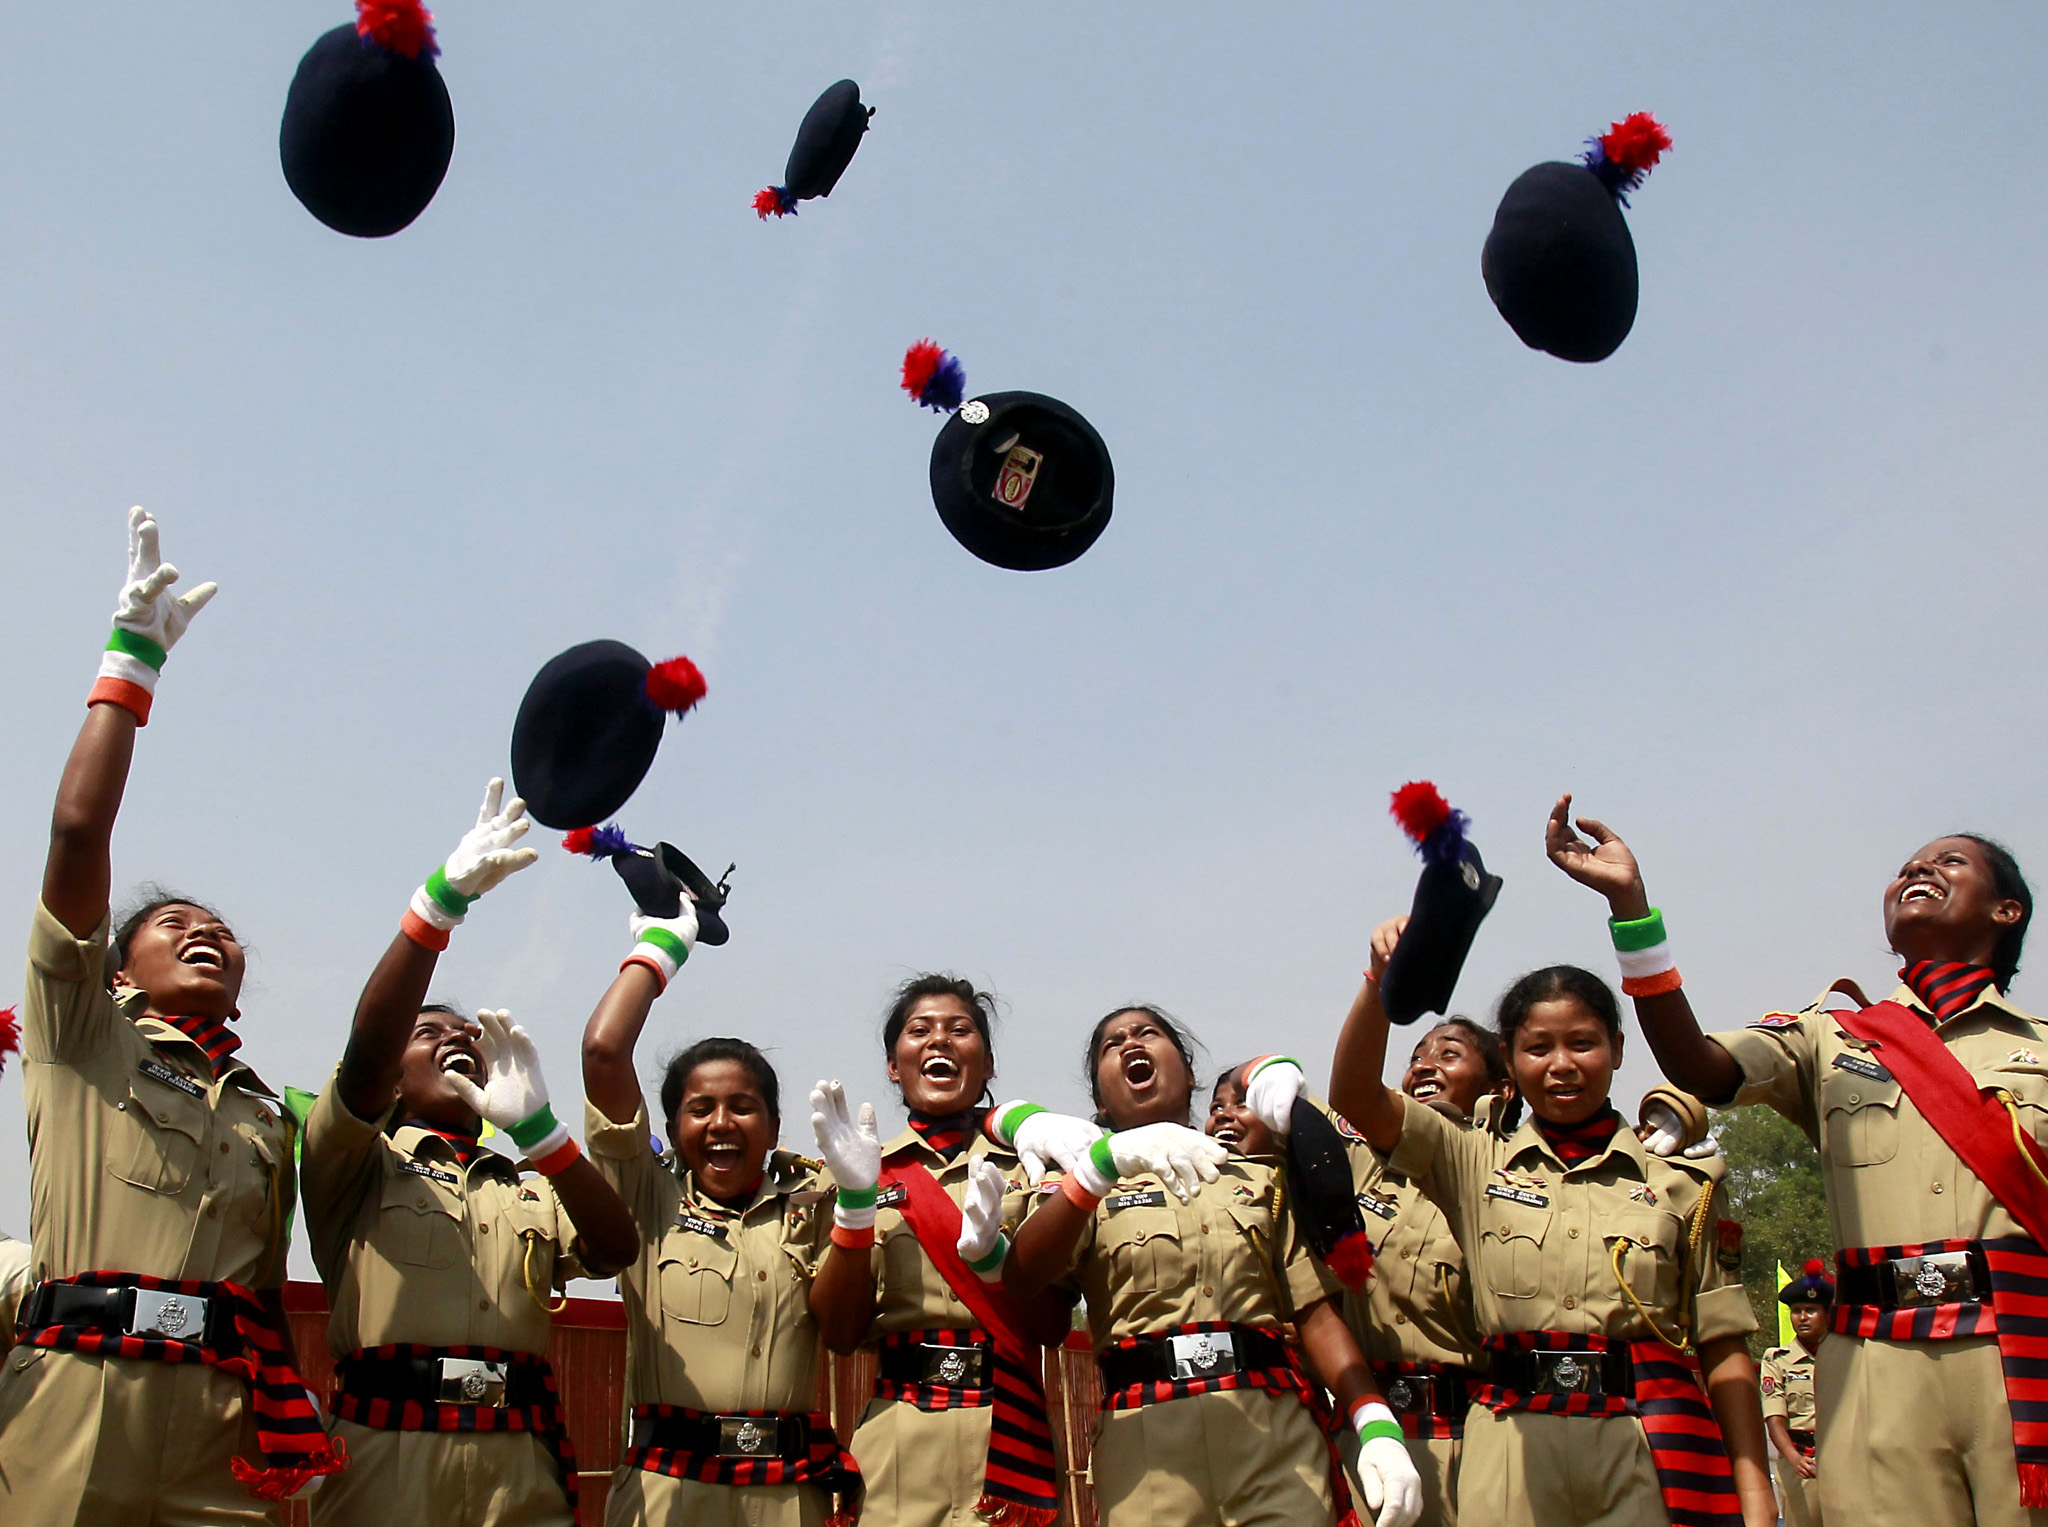 Female police recruits throw their caps in the air, as they celebrate after their passing-out parade, in the northeastern Indian city of Agar...Female police recruits throw their caps in the air, as they celebrate after their passing-out parade, in the northeastern Indian city of Agartala, March 2, 2015. REUTERS/Jayanta Dey (INDIA - Tags: MILITARY)